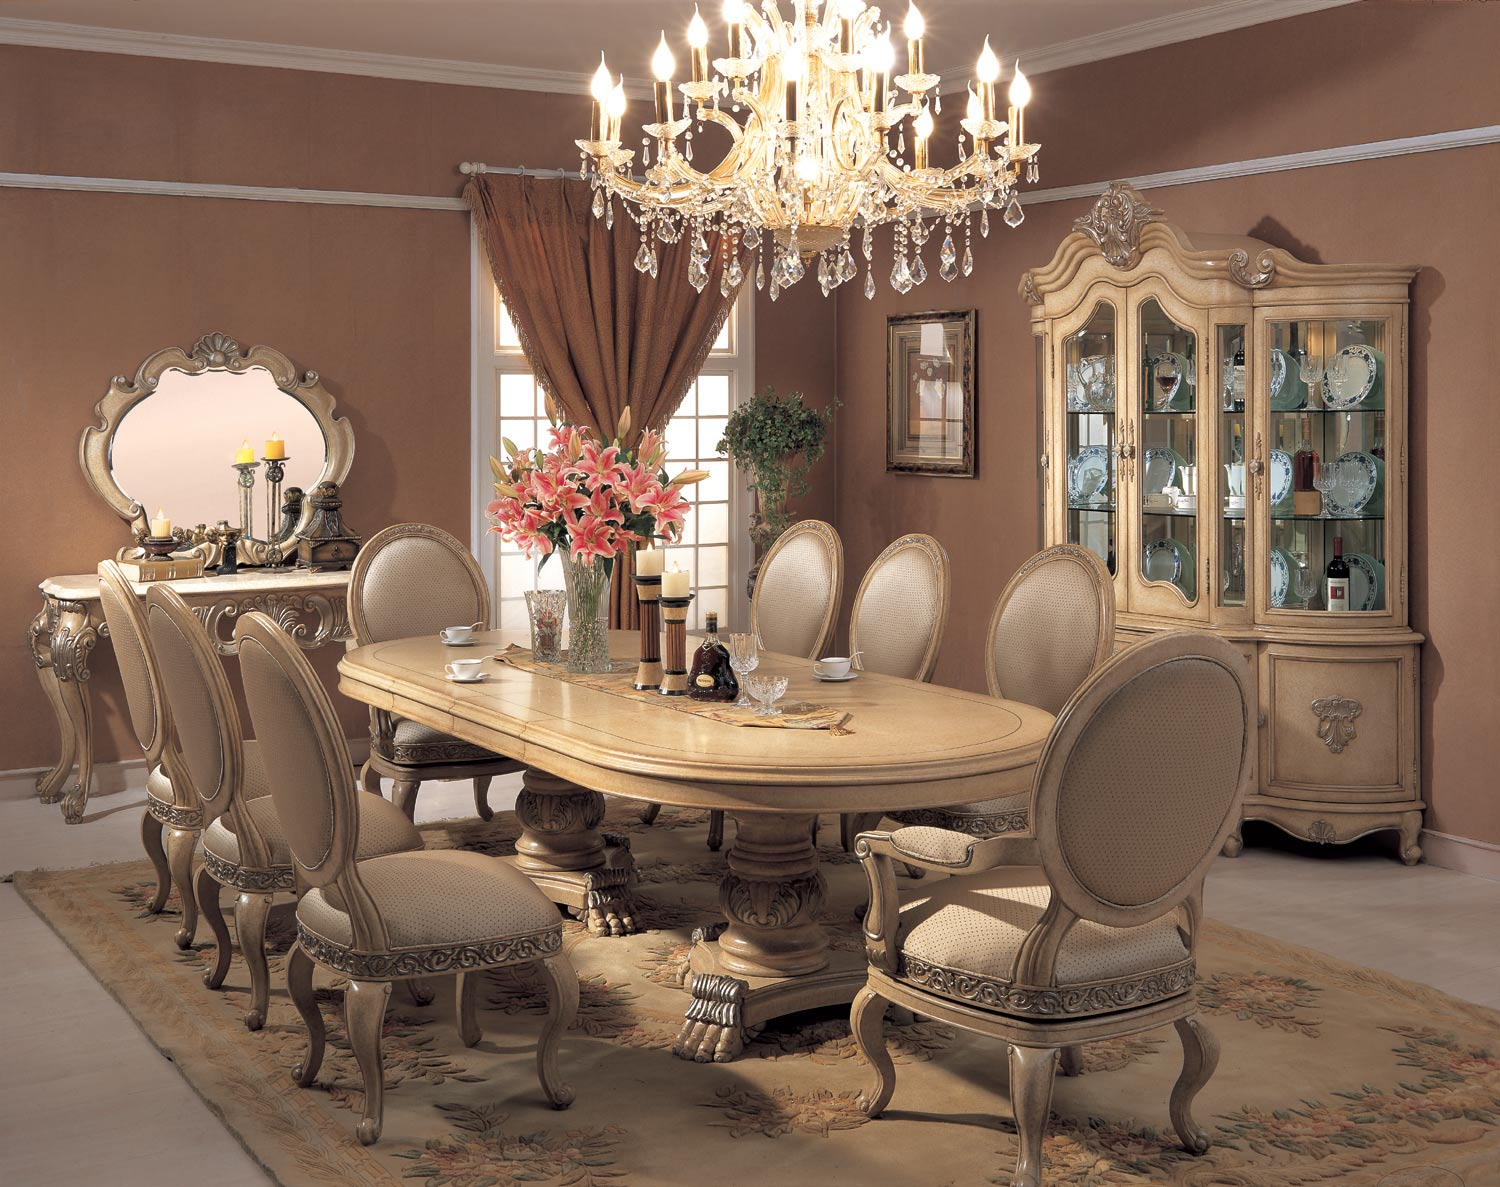 Chardonnay Oval Table Dining Room Set Oval Table Dining